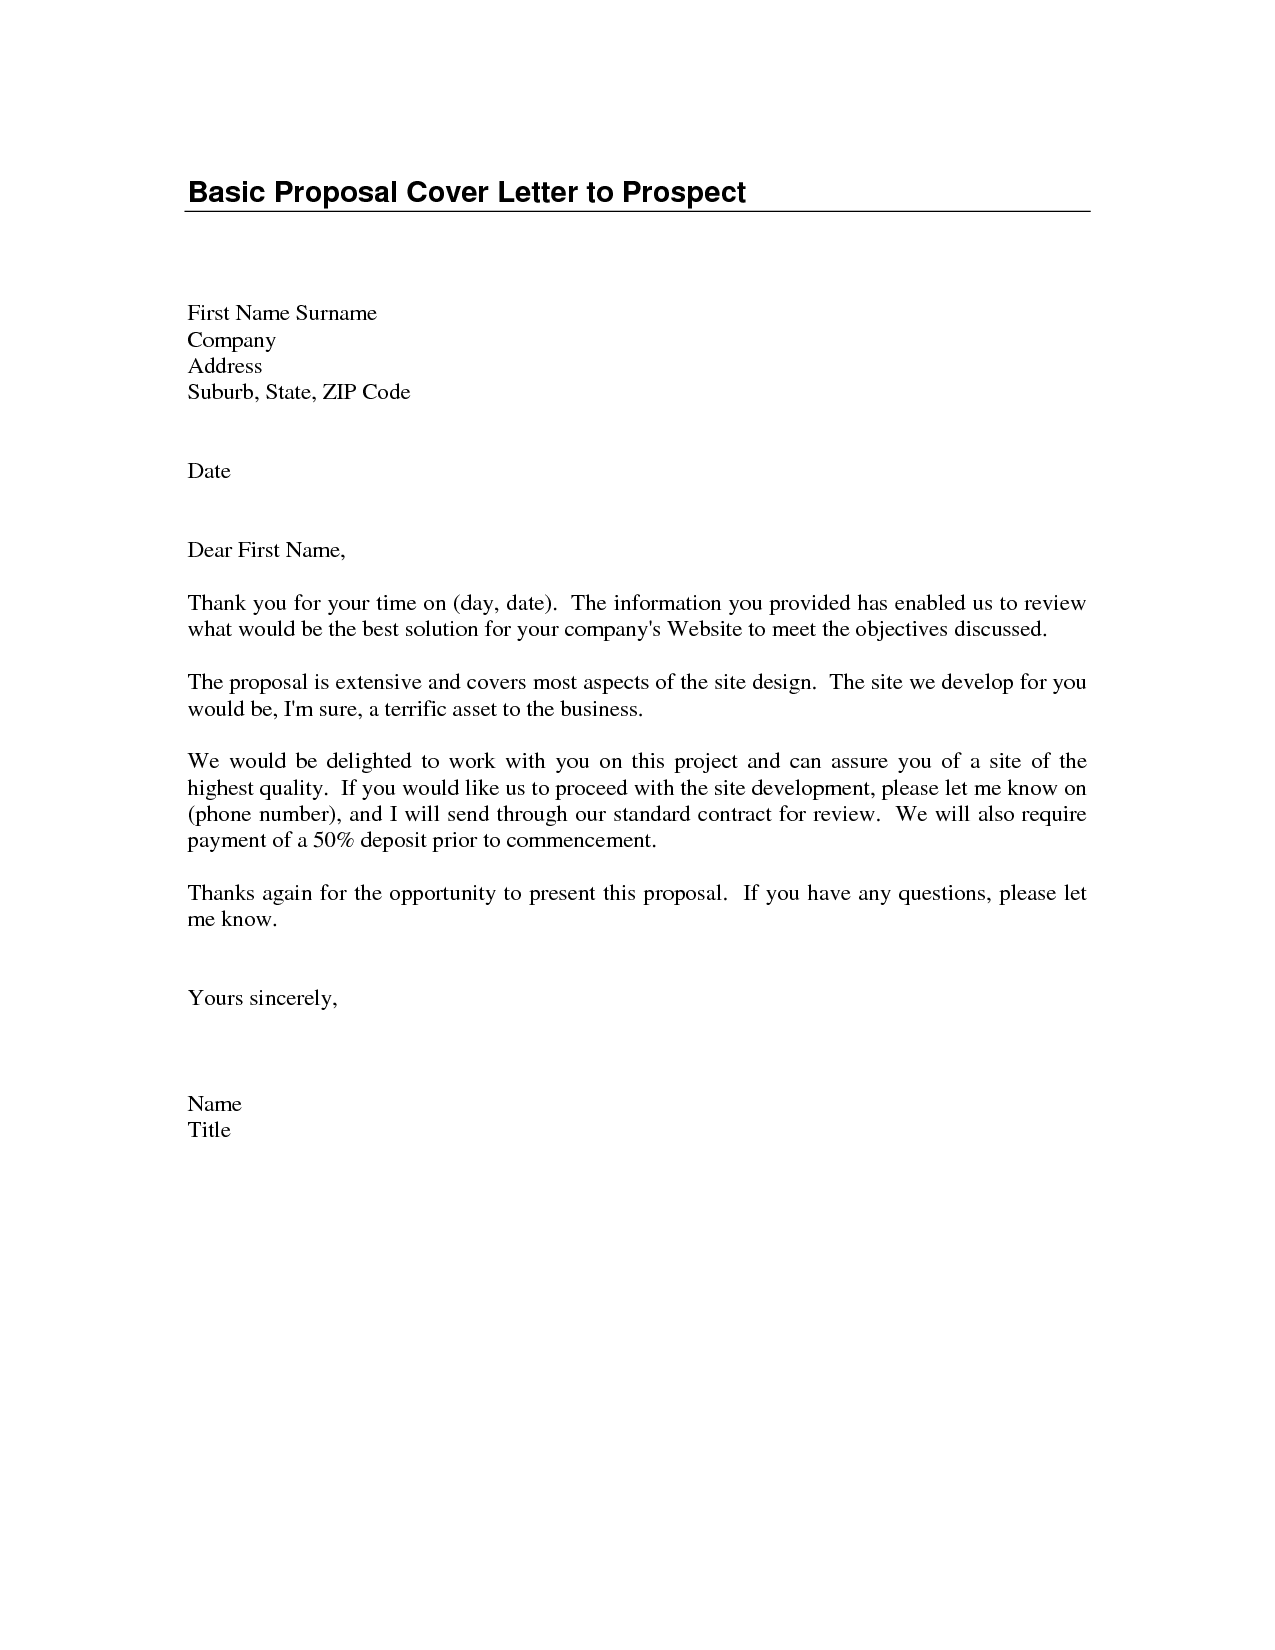 Basic cover letter for resume fresh simple resume cover letter.